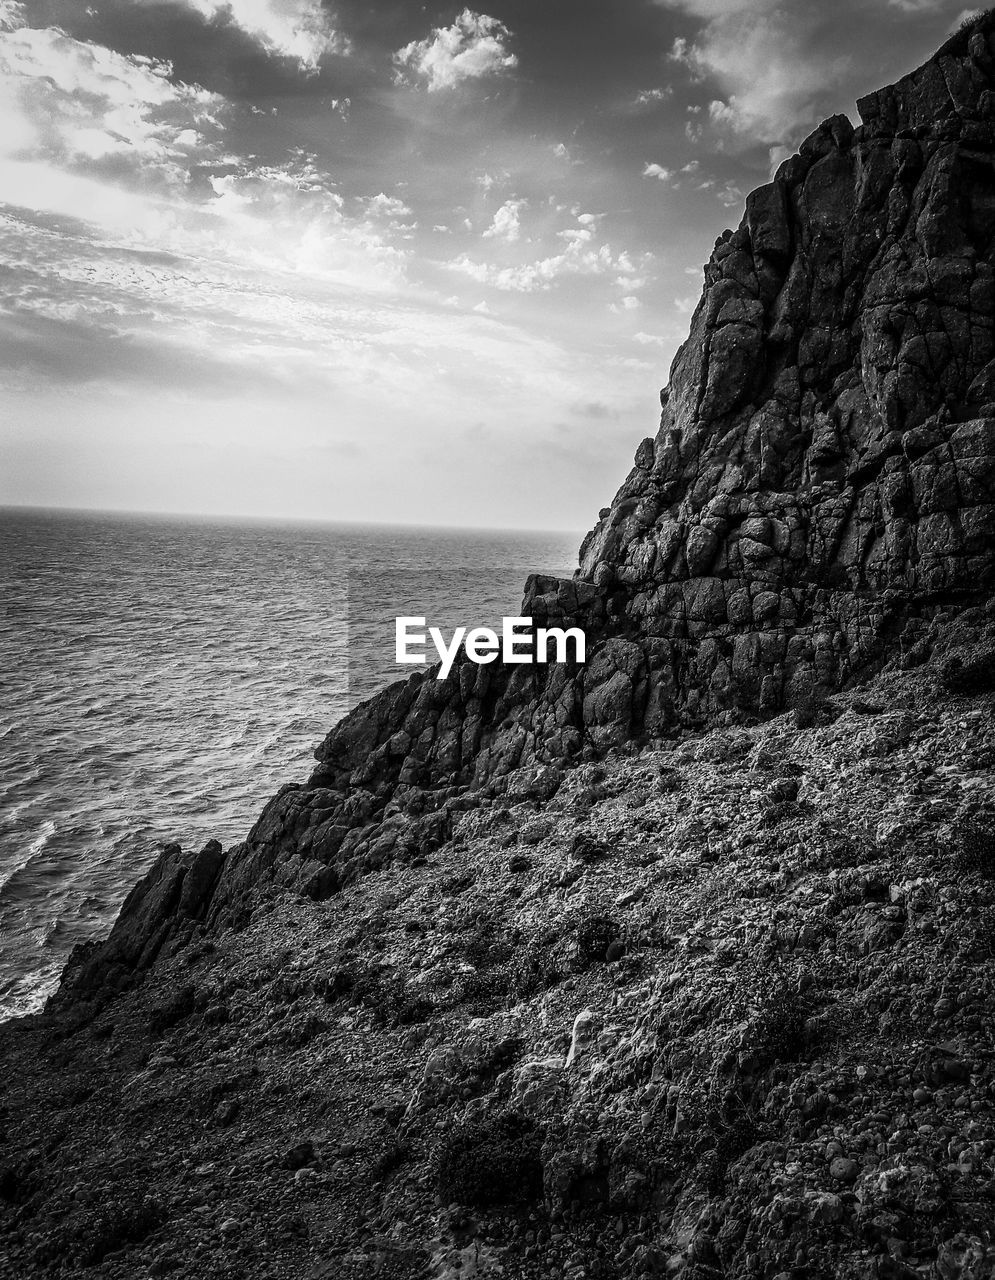 sea, sky, rock, water, horizon over water, horizon, cloud - sky, scenics - nature, rock - object, beauty in nature, solid, tranquil scene, tranquility, cliff, rock formation, land, nature, no people, day, outdoors, formation, rocky coastline, eroded